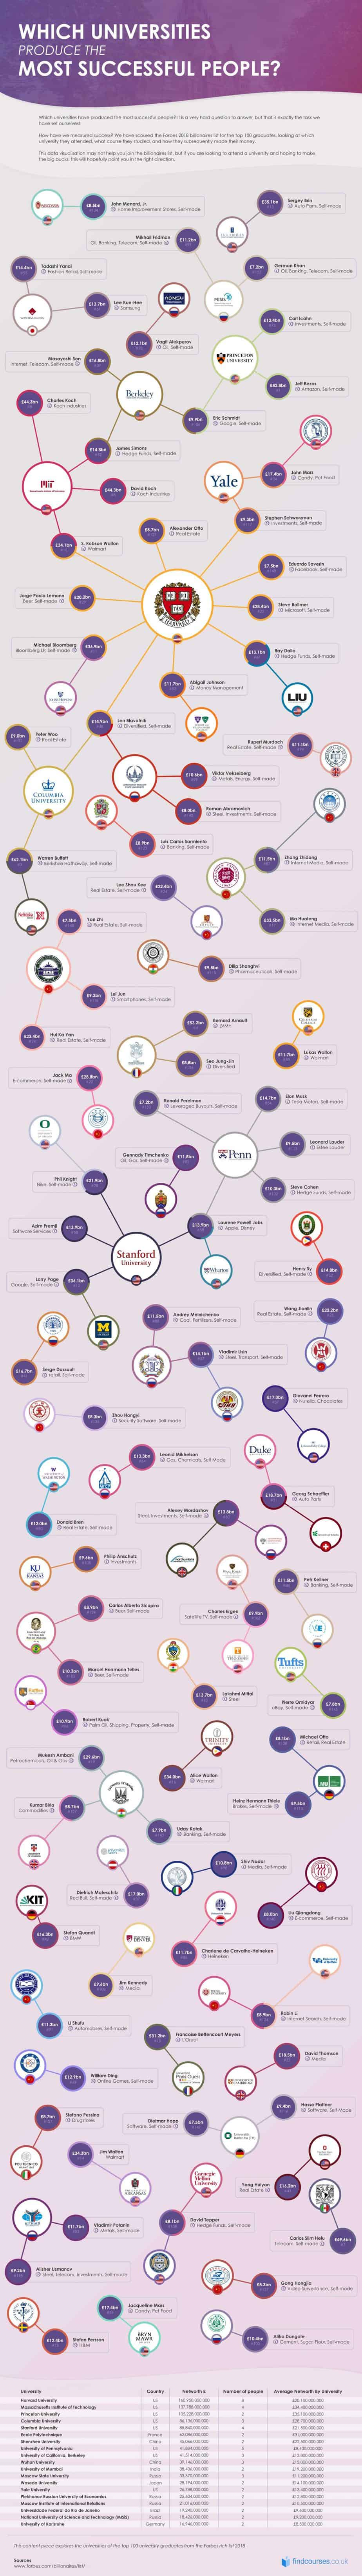 Which Universities Educated the Most Successful People